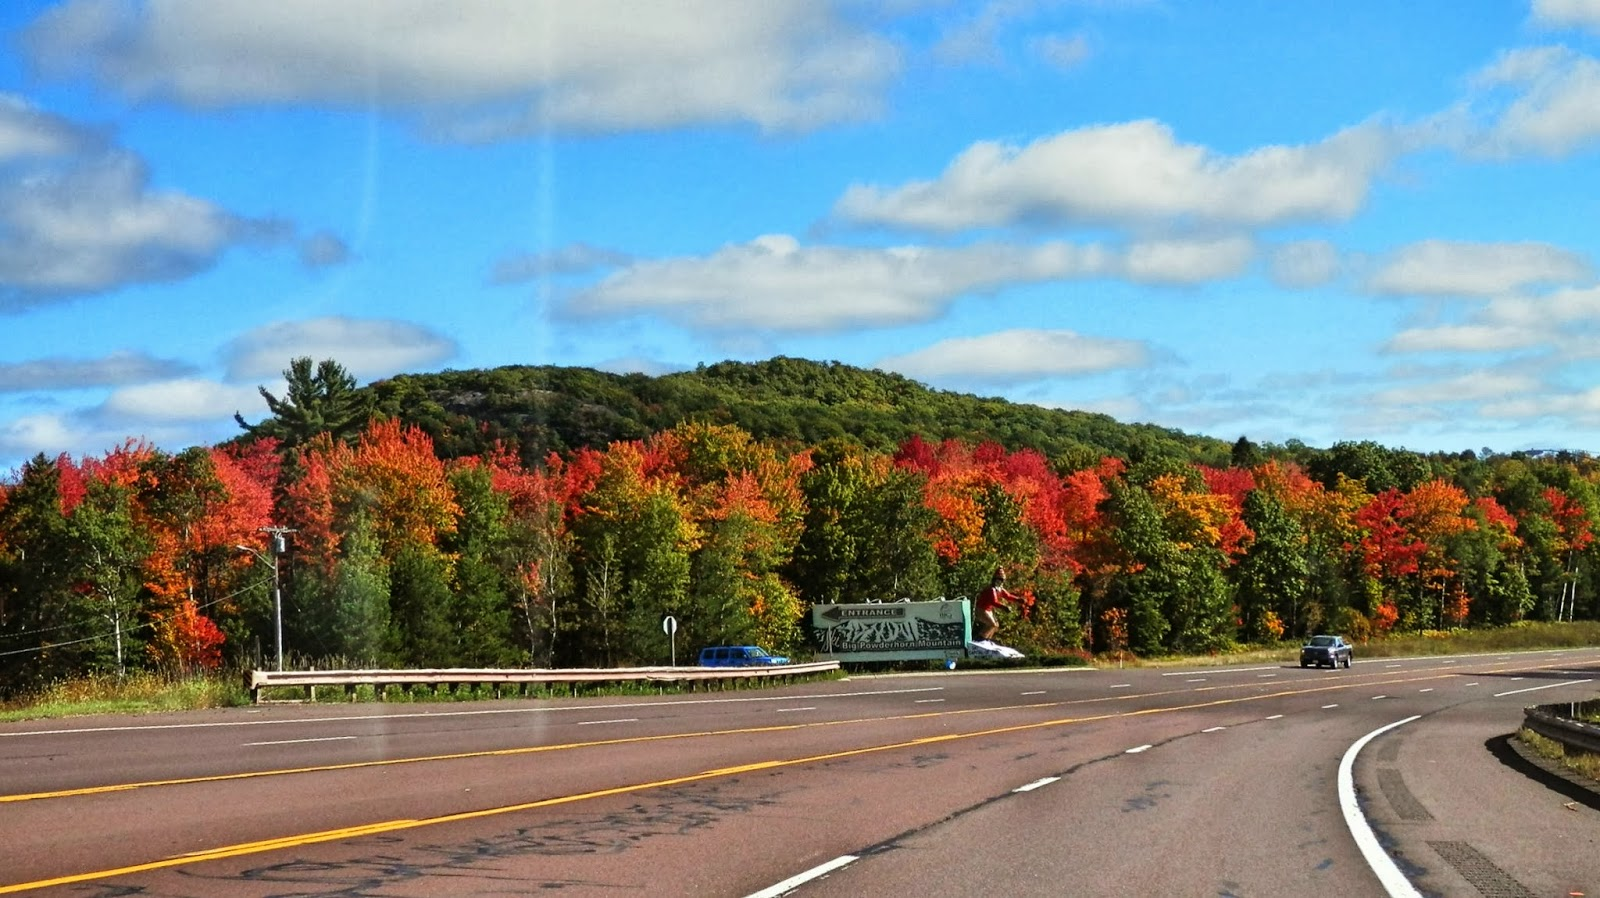 Taken through the car windshield, there are some trees starting to ...